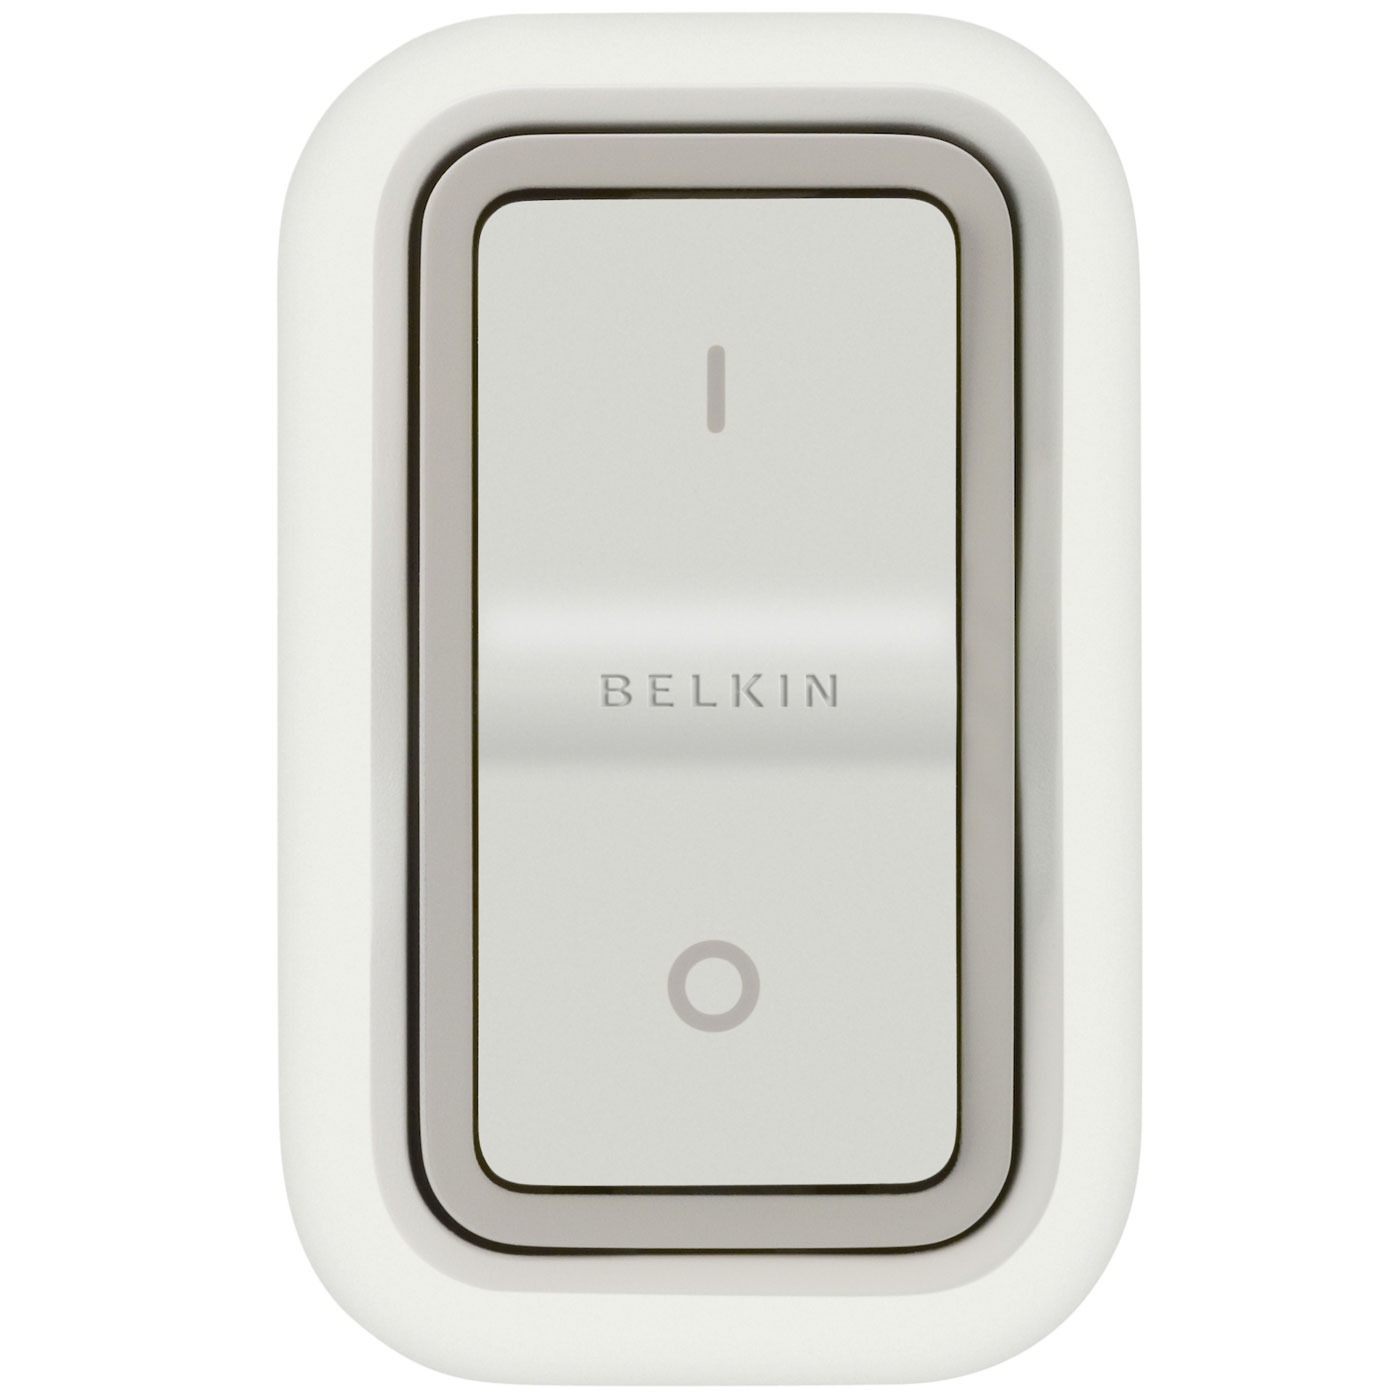 belkin conserve switch parafoudre belkin sur ldlc. Black Bedroom Furniture Sets. Home Design Ideas